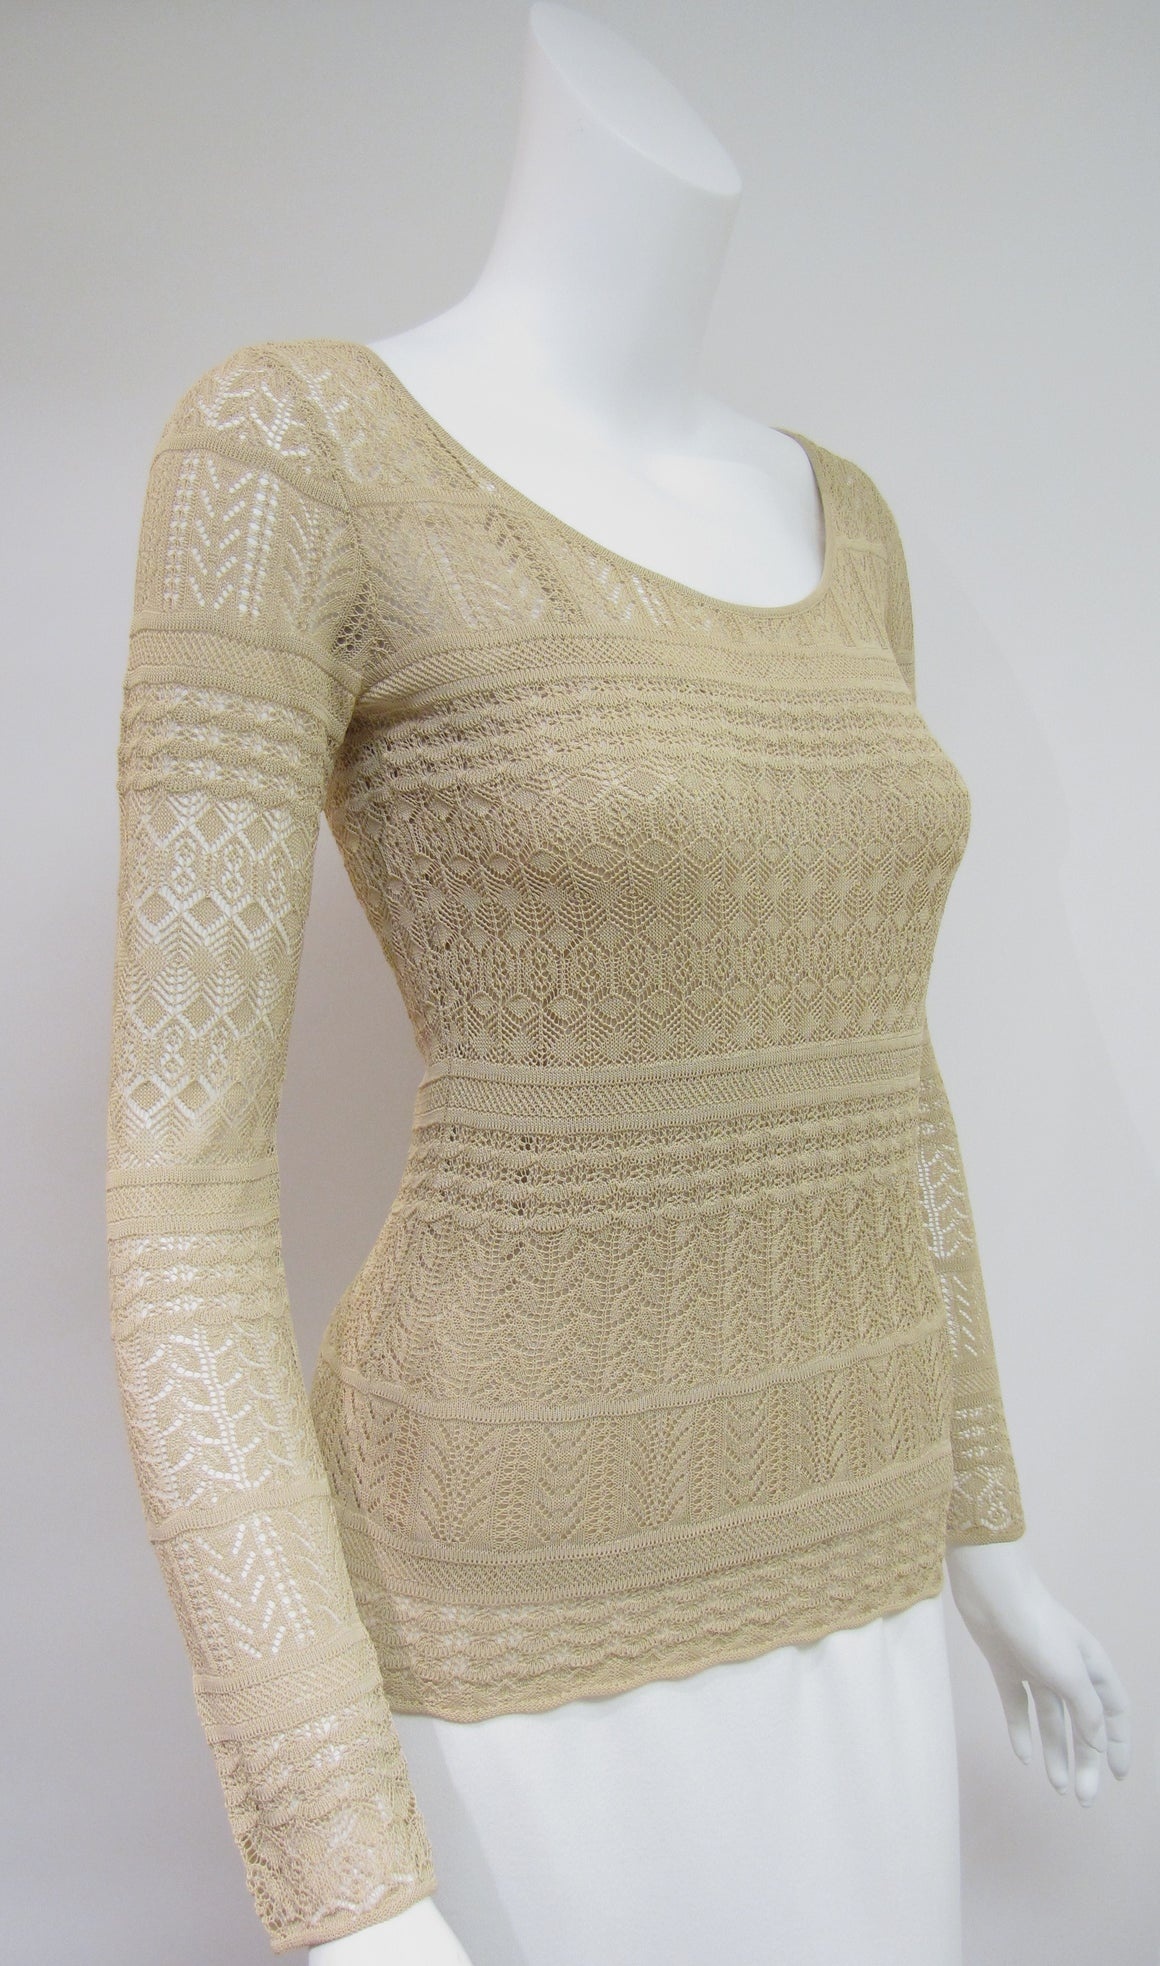 RALPH LAUREN - Black Label Beige Lacy-Knit Viscose Top & Silk Camisole Set Size: Small